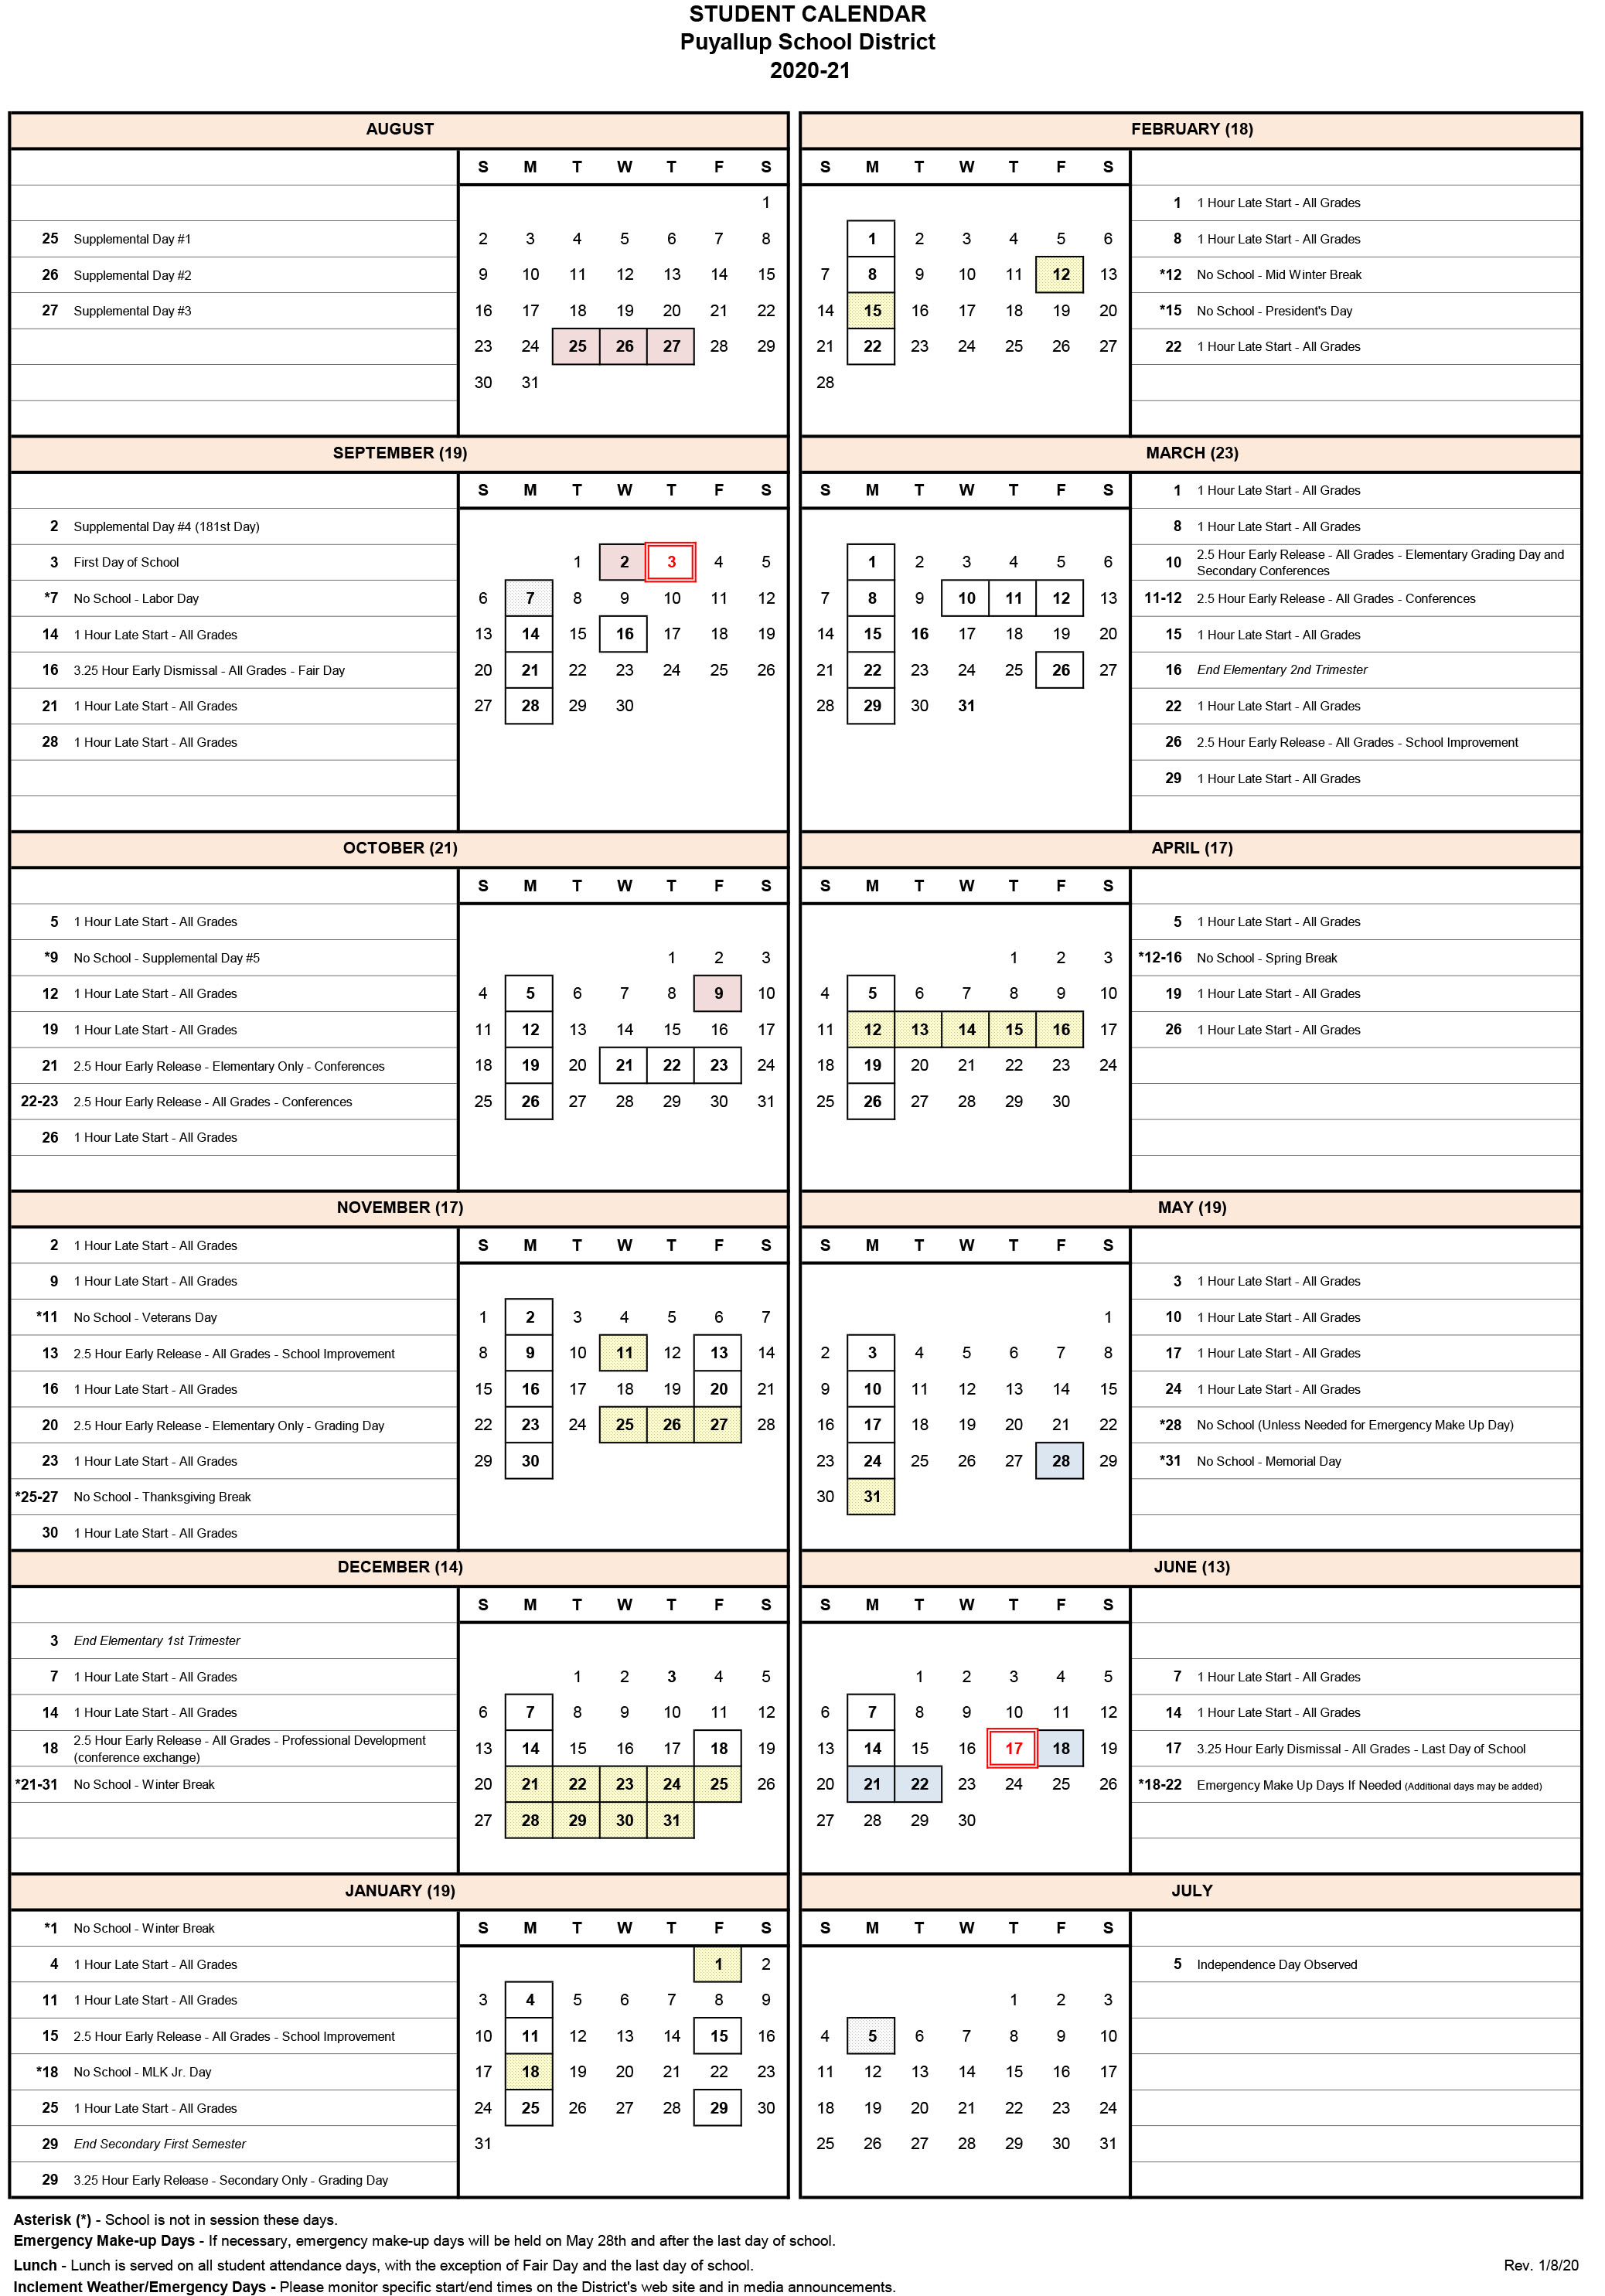 2020 2021 Student Calendar Approved - Puyallup School District For Wake Tech Calendar 2021